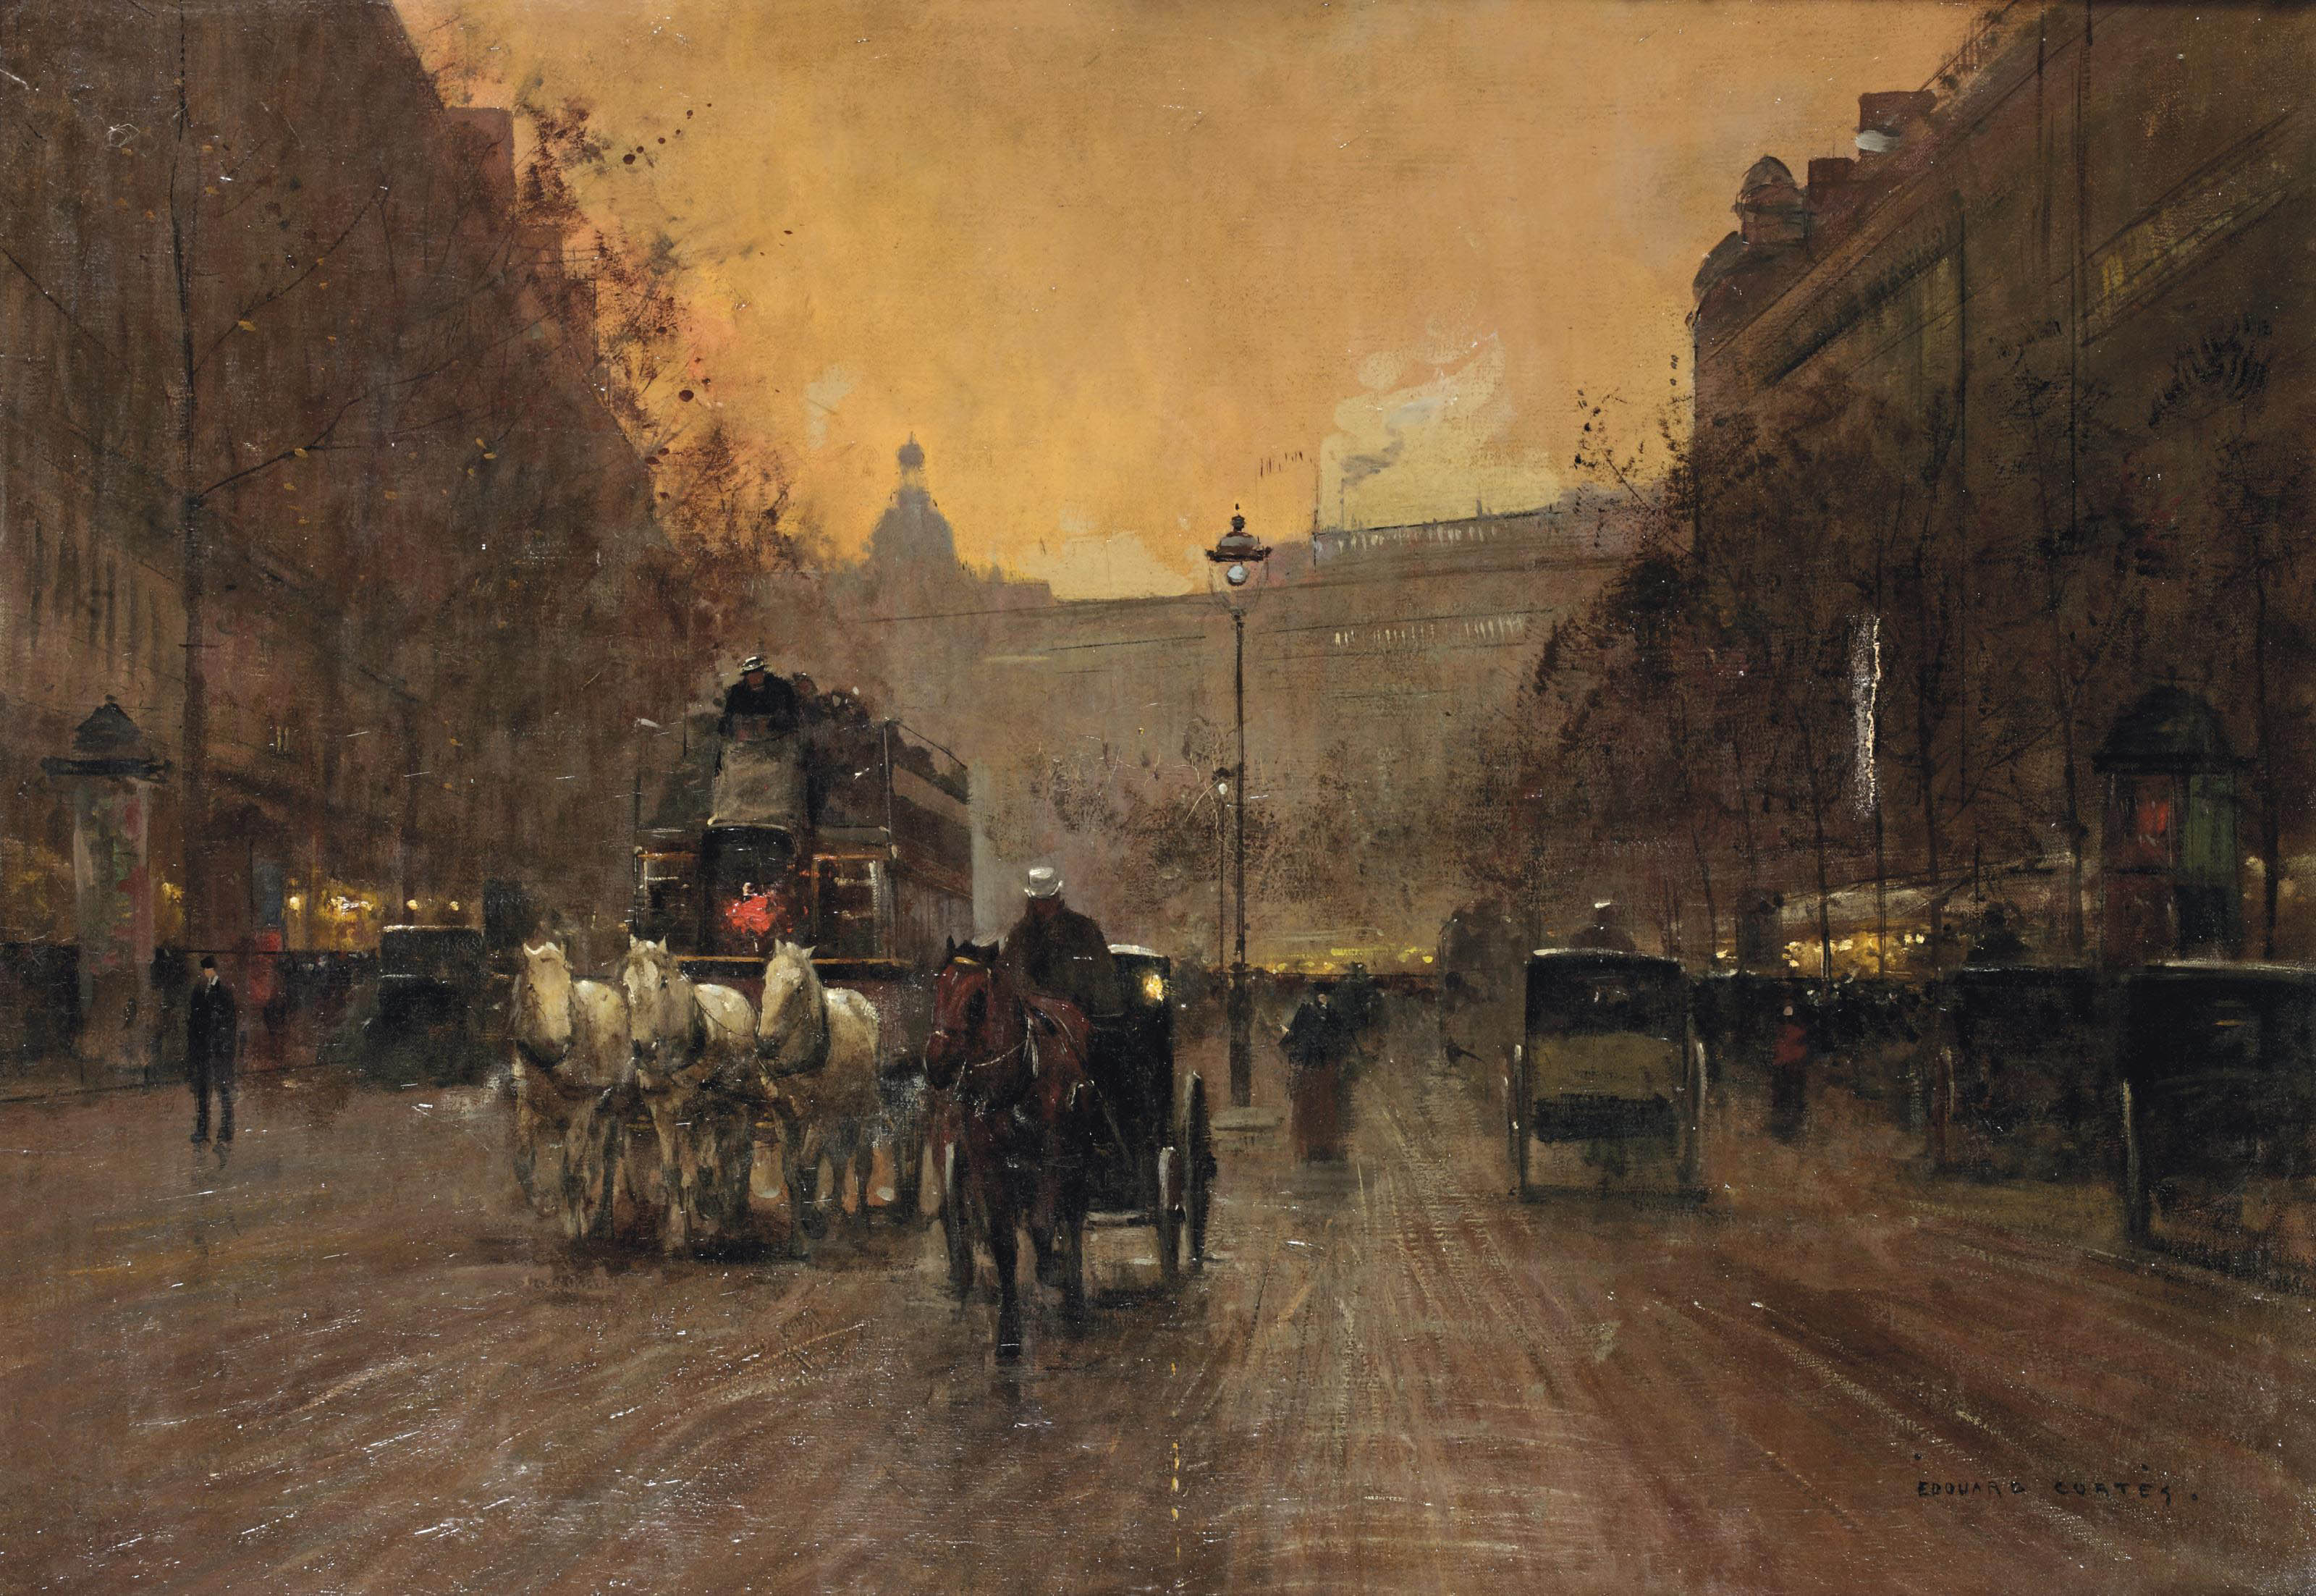 Boulevard in Montmartre, Paris